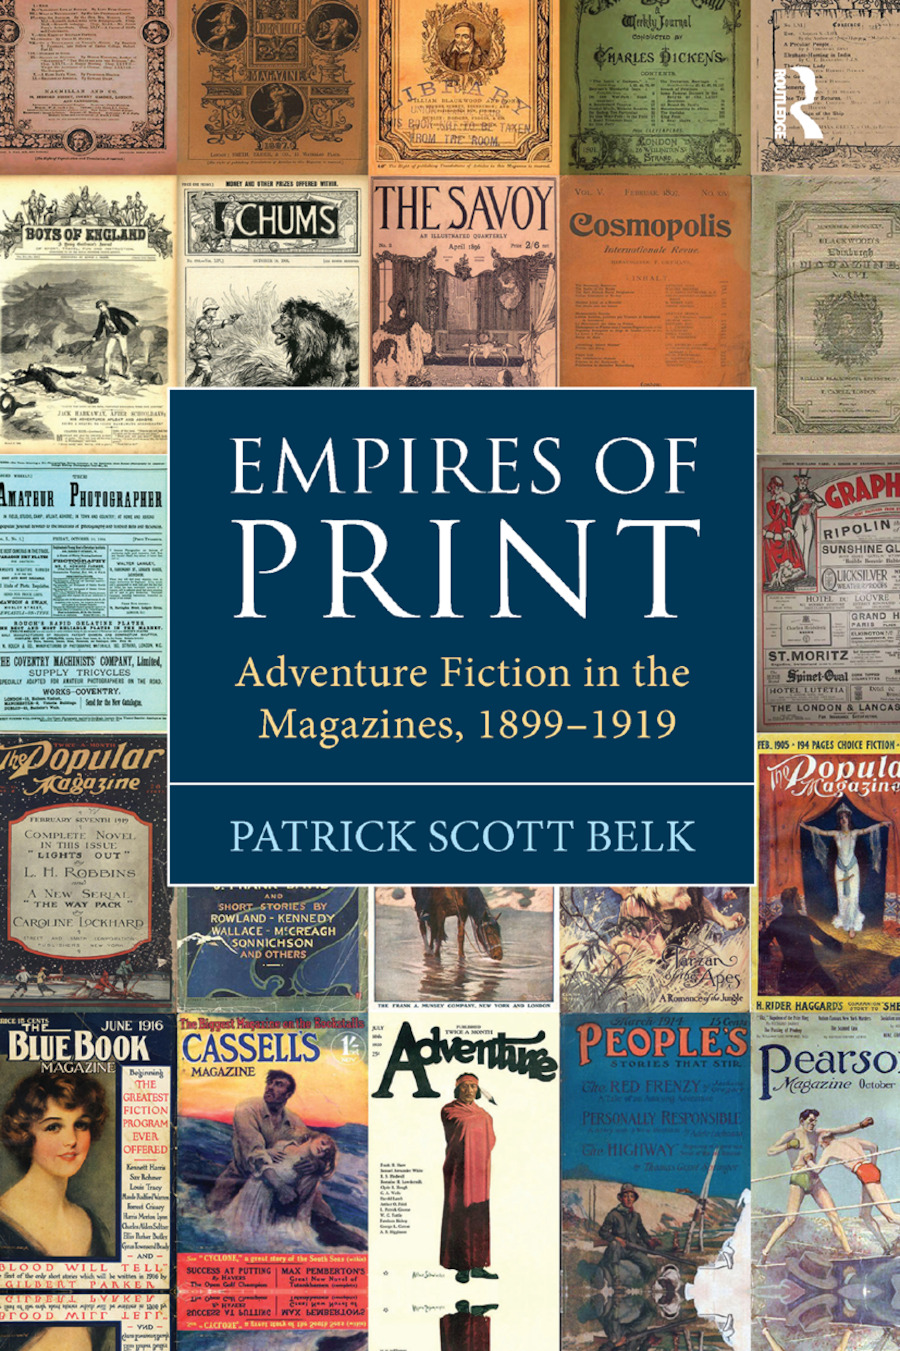 Empires of Print: Adventure Fiction in the Magazines, 1899-1919 book cover